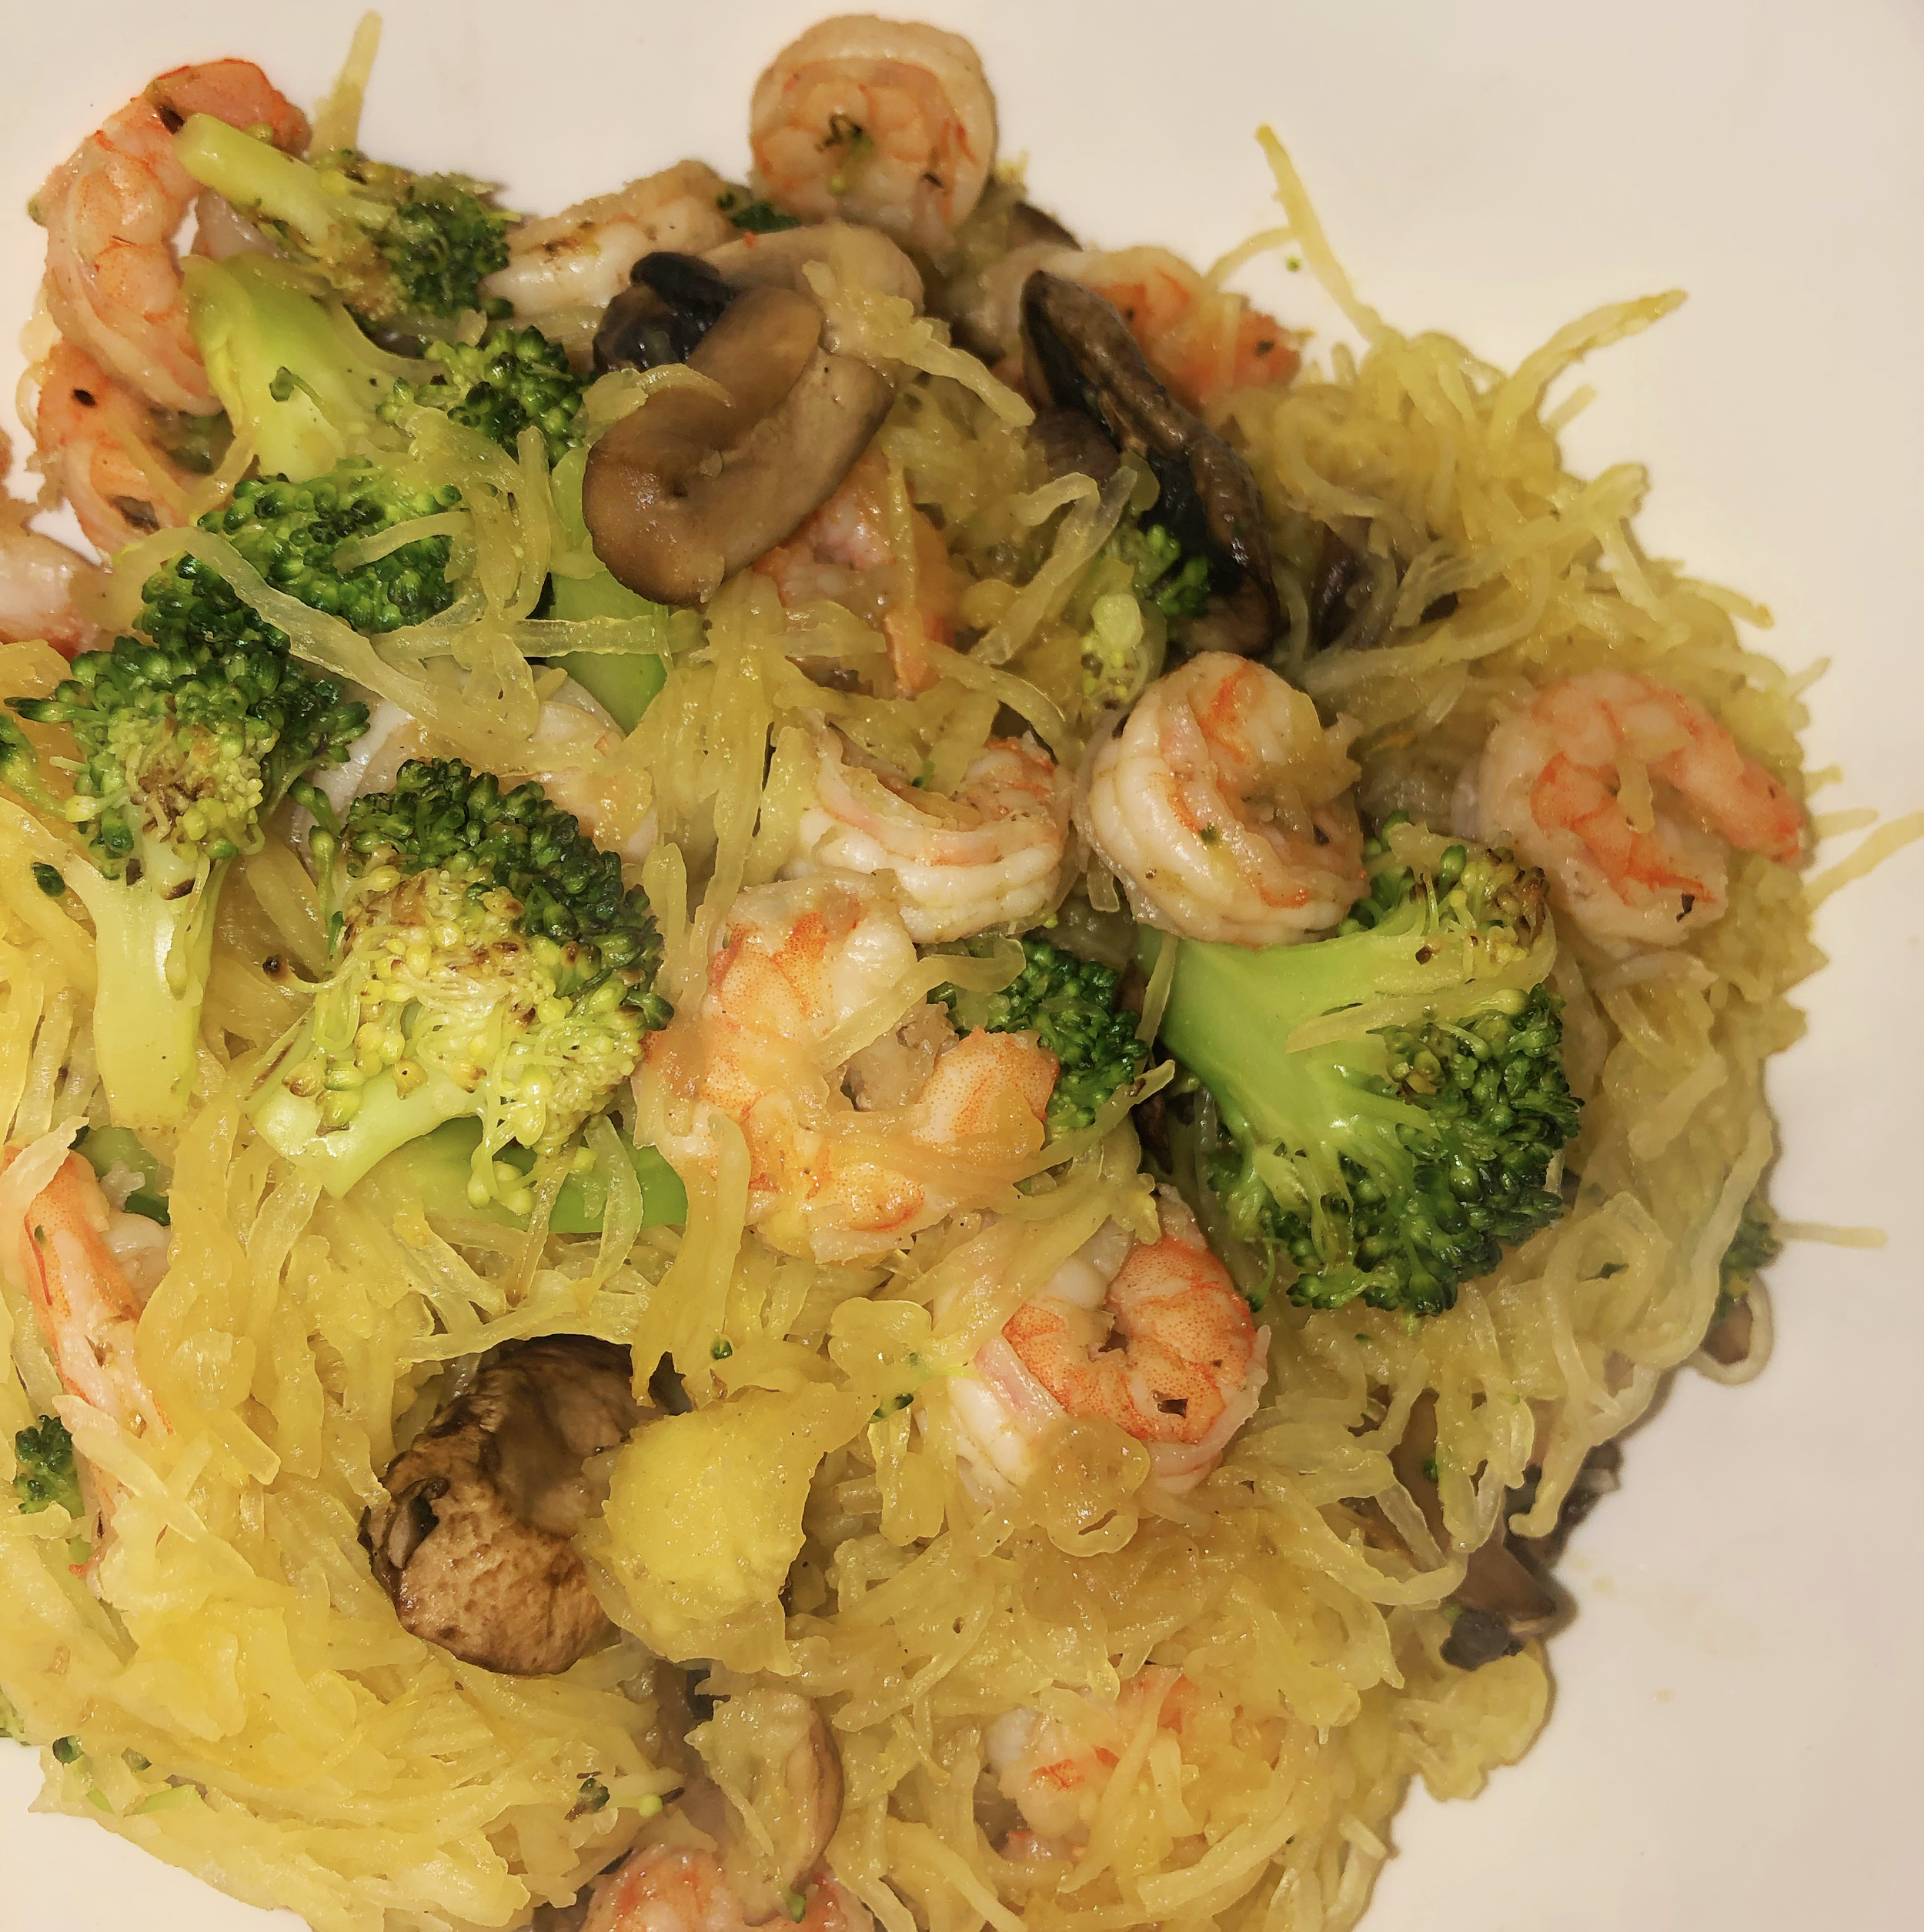 Dinner: Shrimp, broccoli, mushrooms, and spaghetti squash - 7019238/10 would eat this meal again, and yes I just typed in some random number there. It has mushrooms in it though, and I'm a sucker for mushrooms.